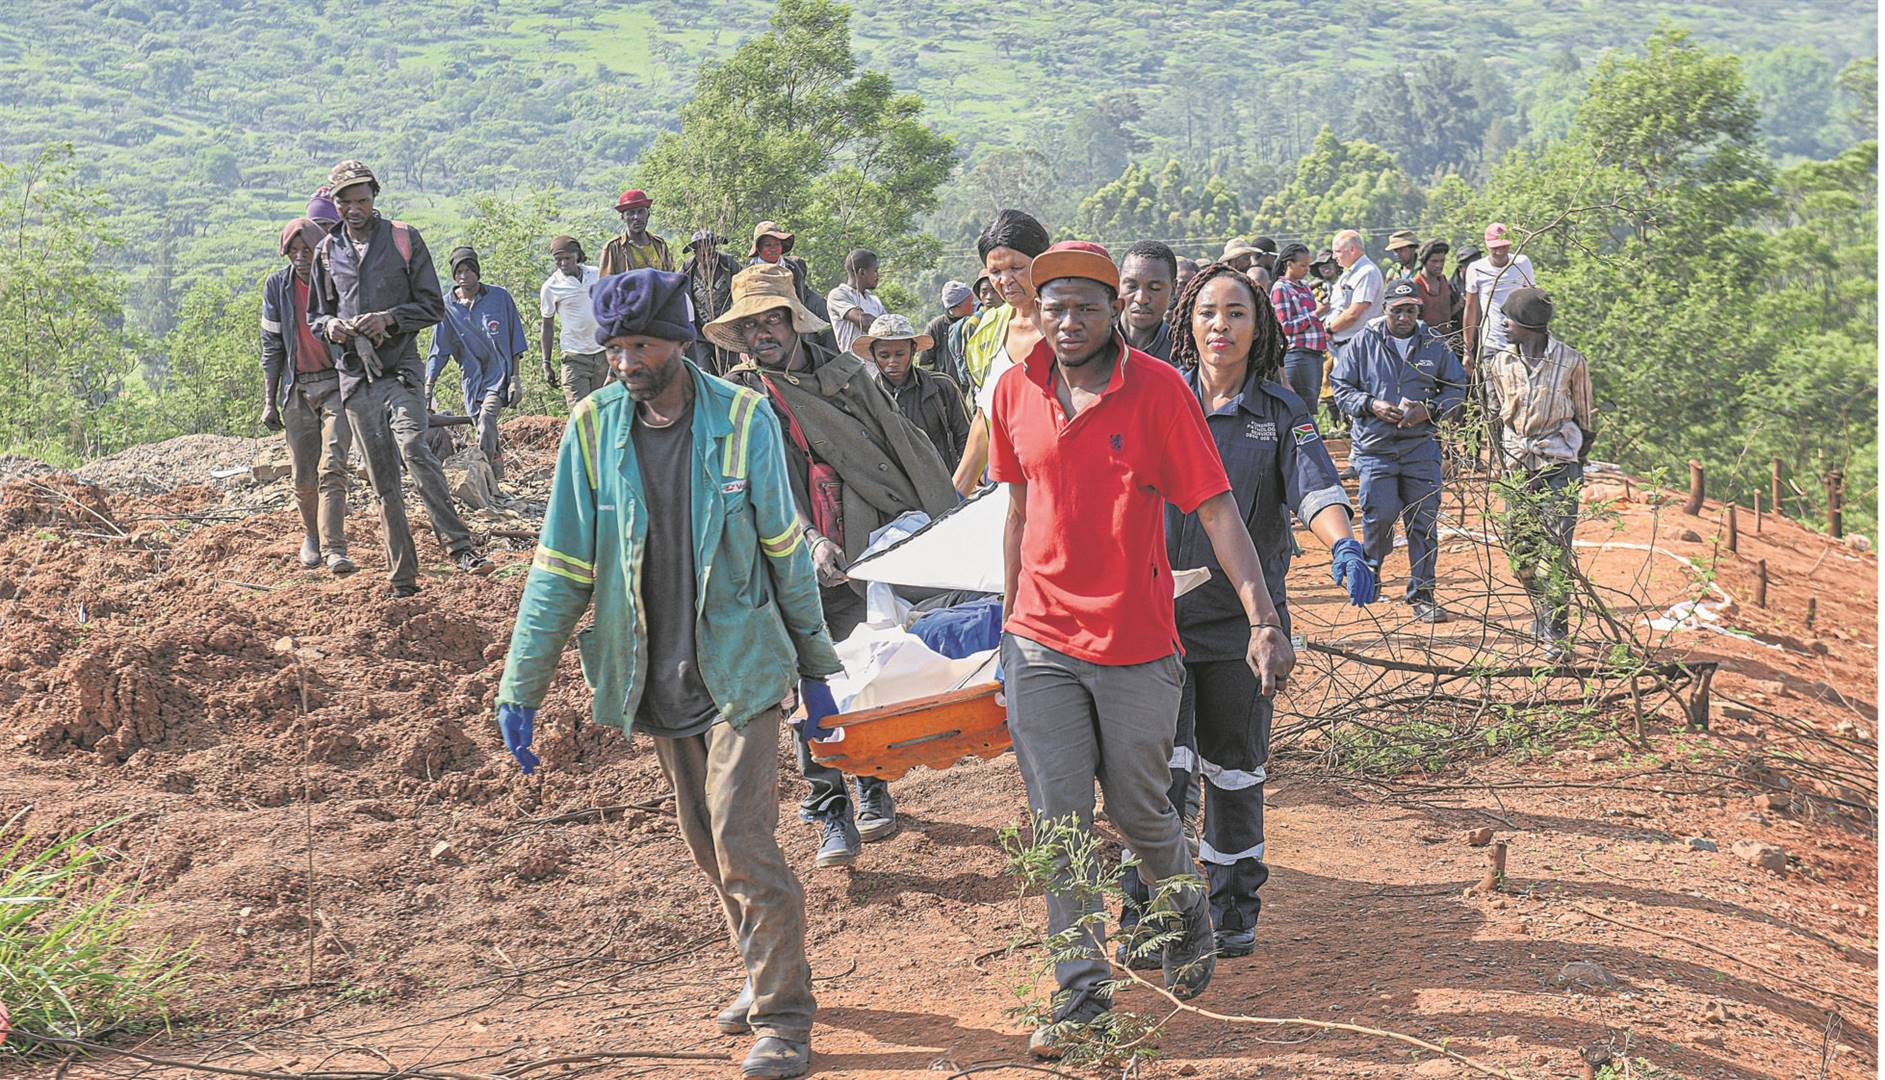 Aarone Limo (in the red shirt) and waste-pickers help the forensic pathology team carry the body of his cousin, Khabutiele Moahloli, from where he was found murdered at the New England Road landfill site on Tuesday morning.